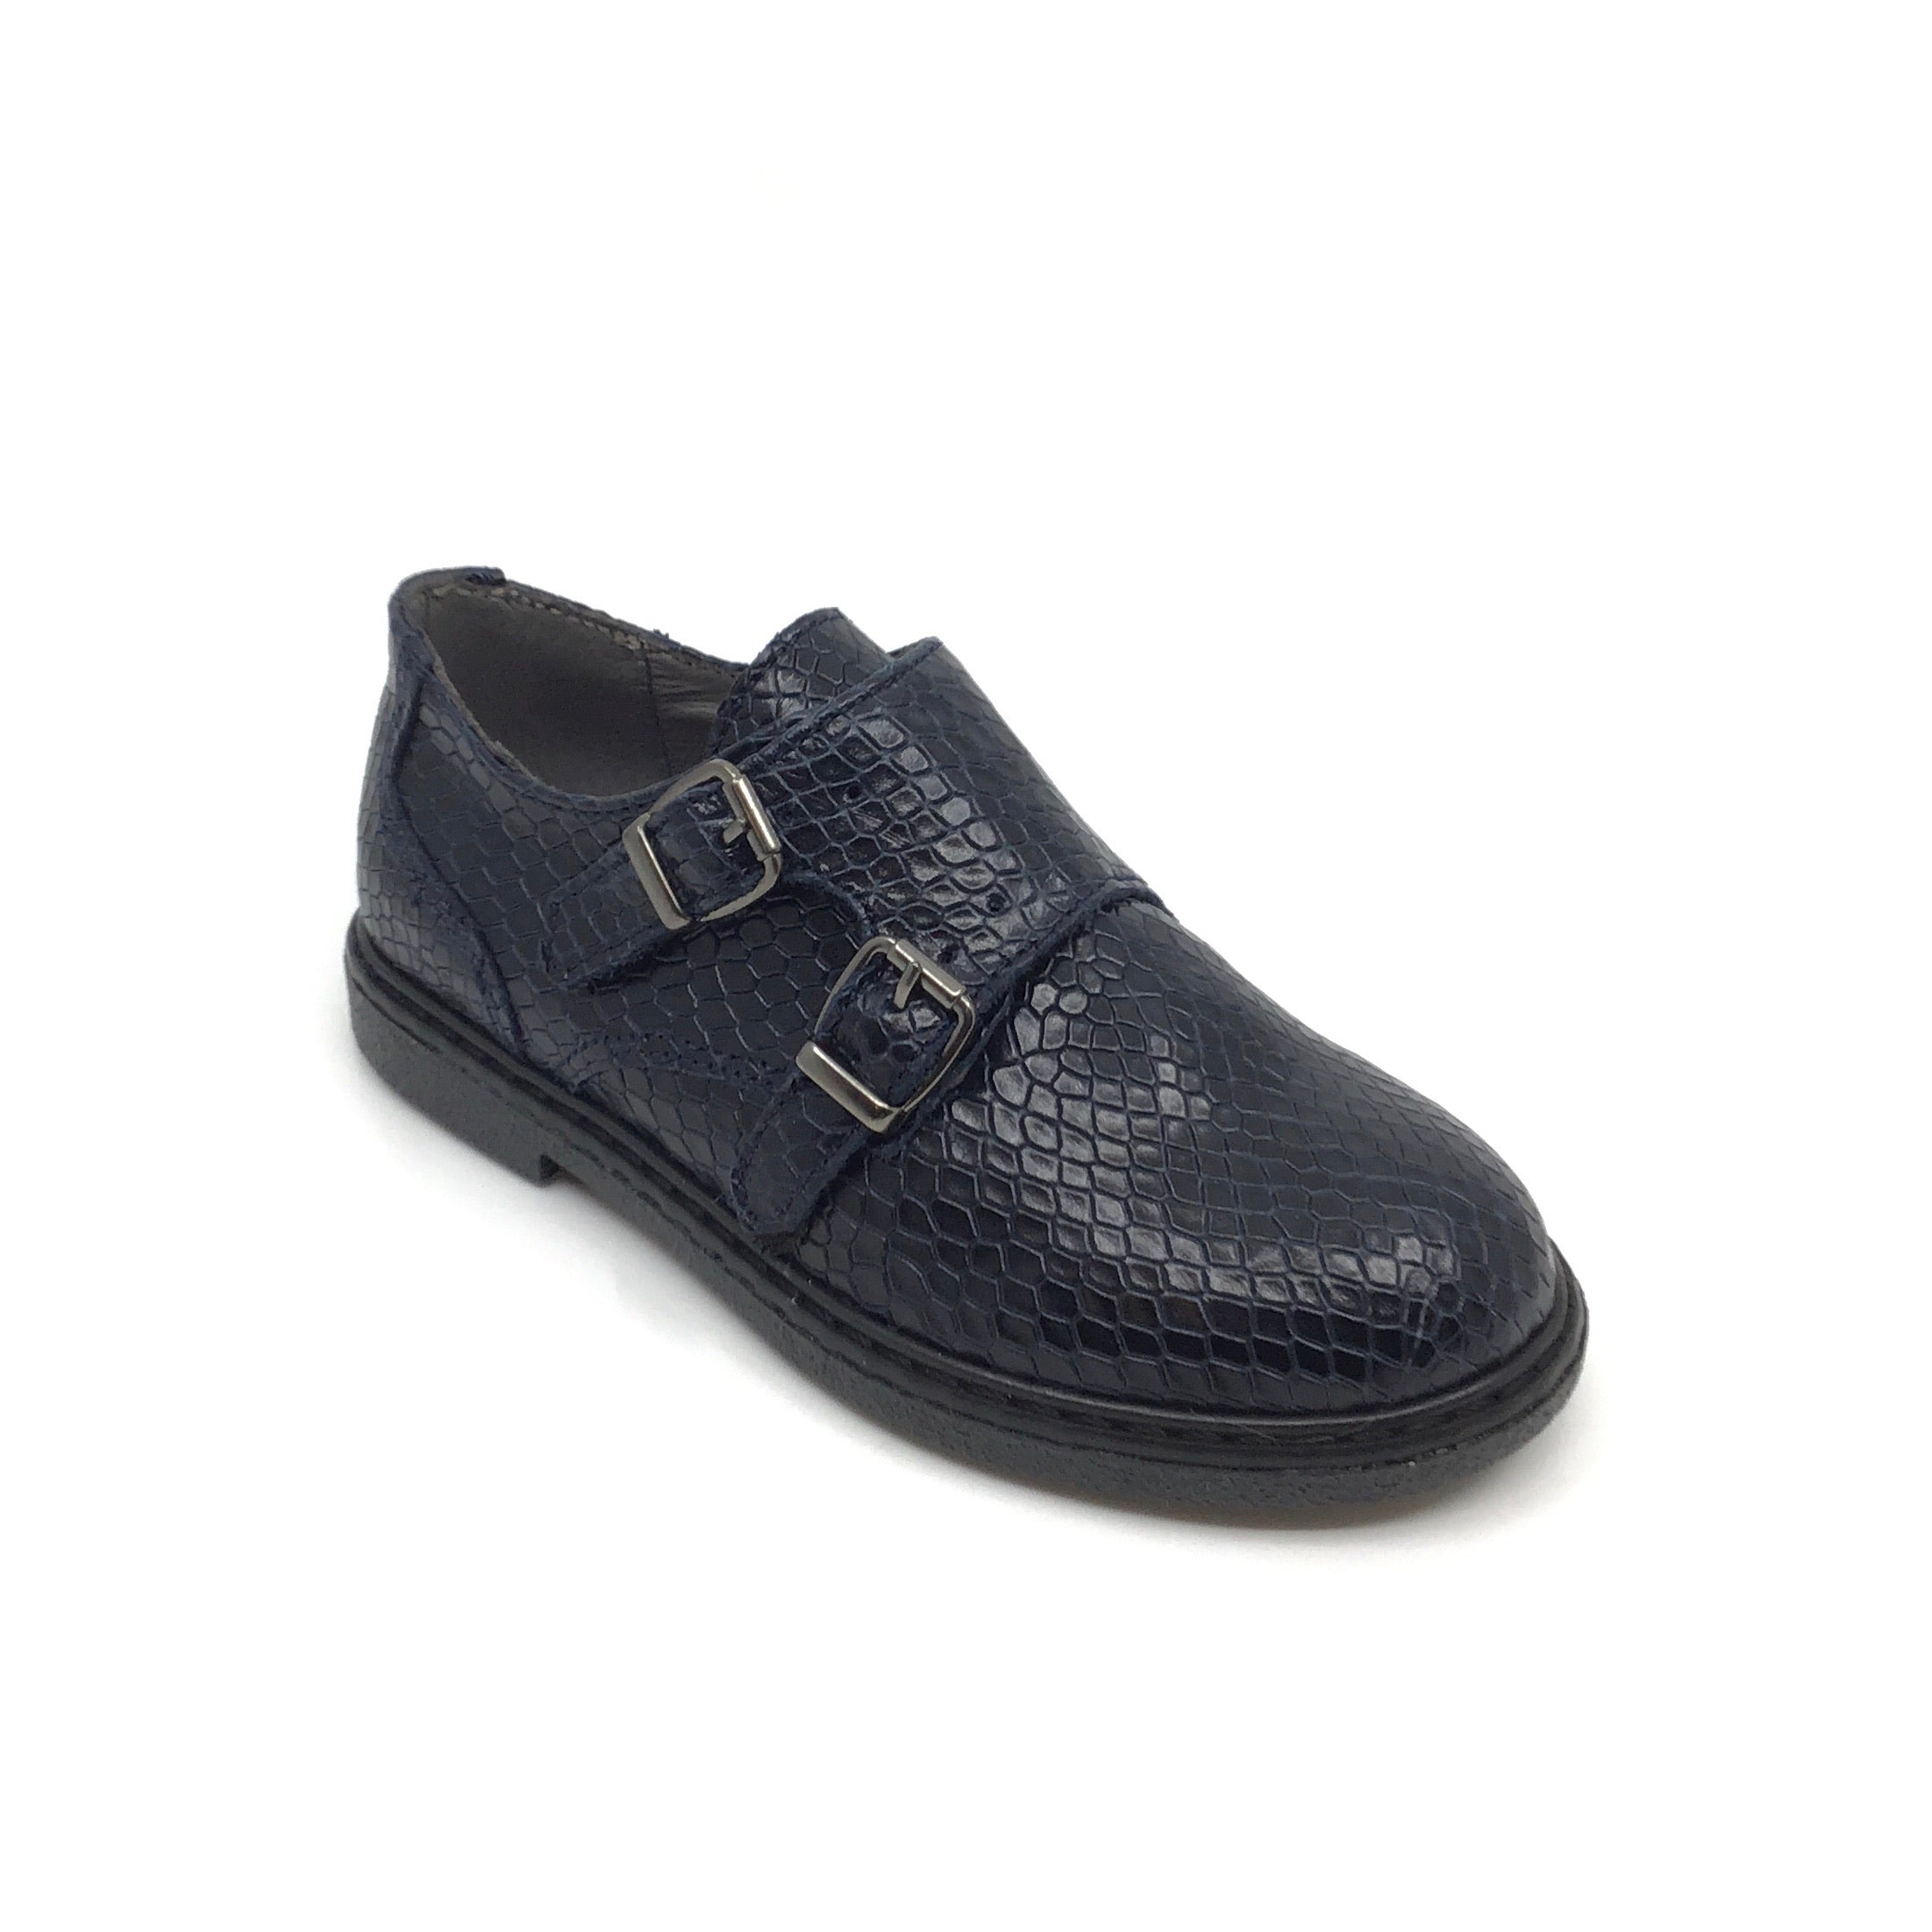 Blublonc Navy Snakeskin Double Buckle Dress Shoe